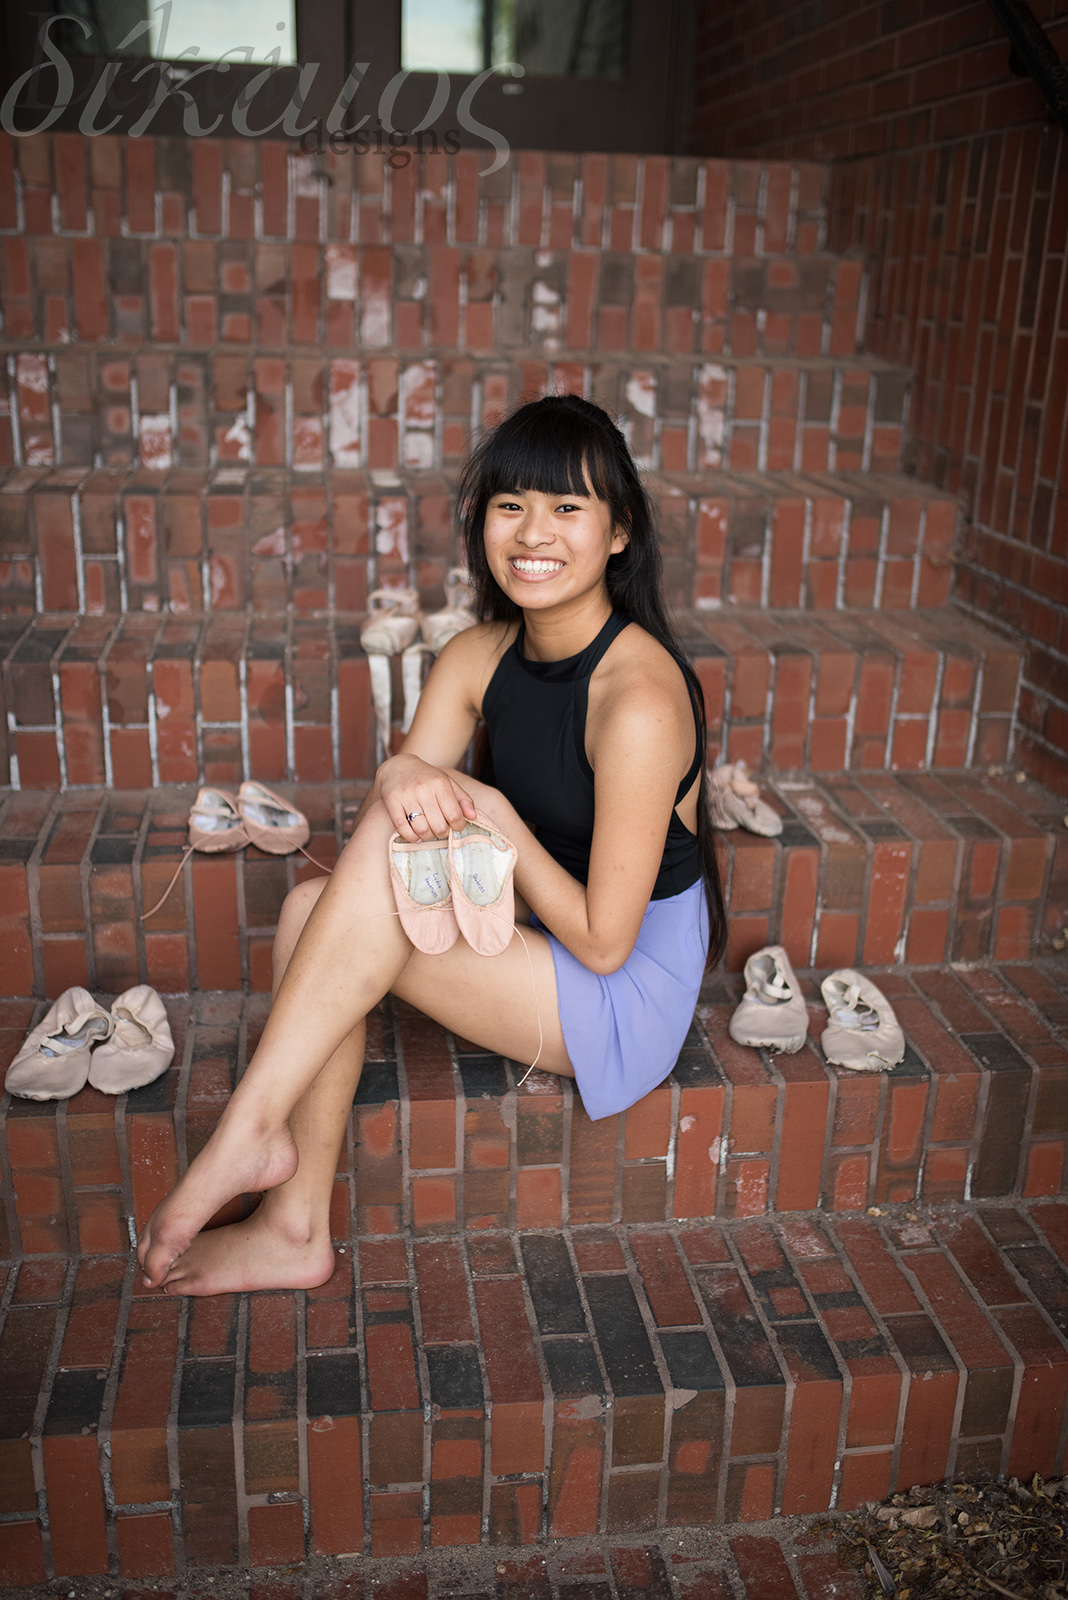 This photo includes all her dancing shoes from the time she started at age four till now as a high school senior. So special!